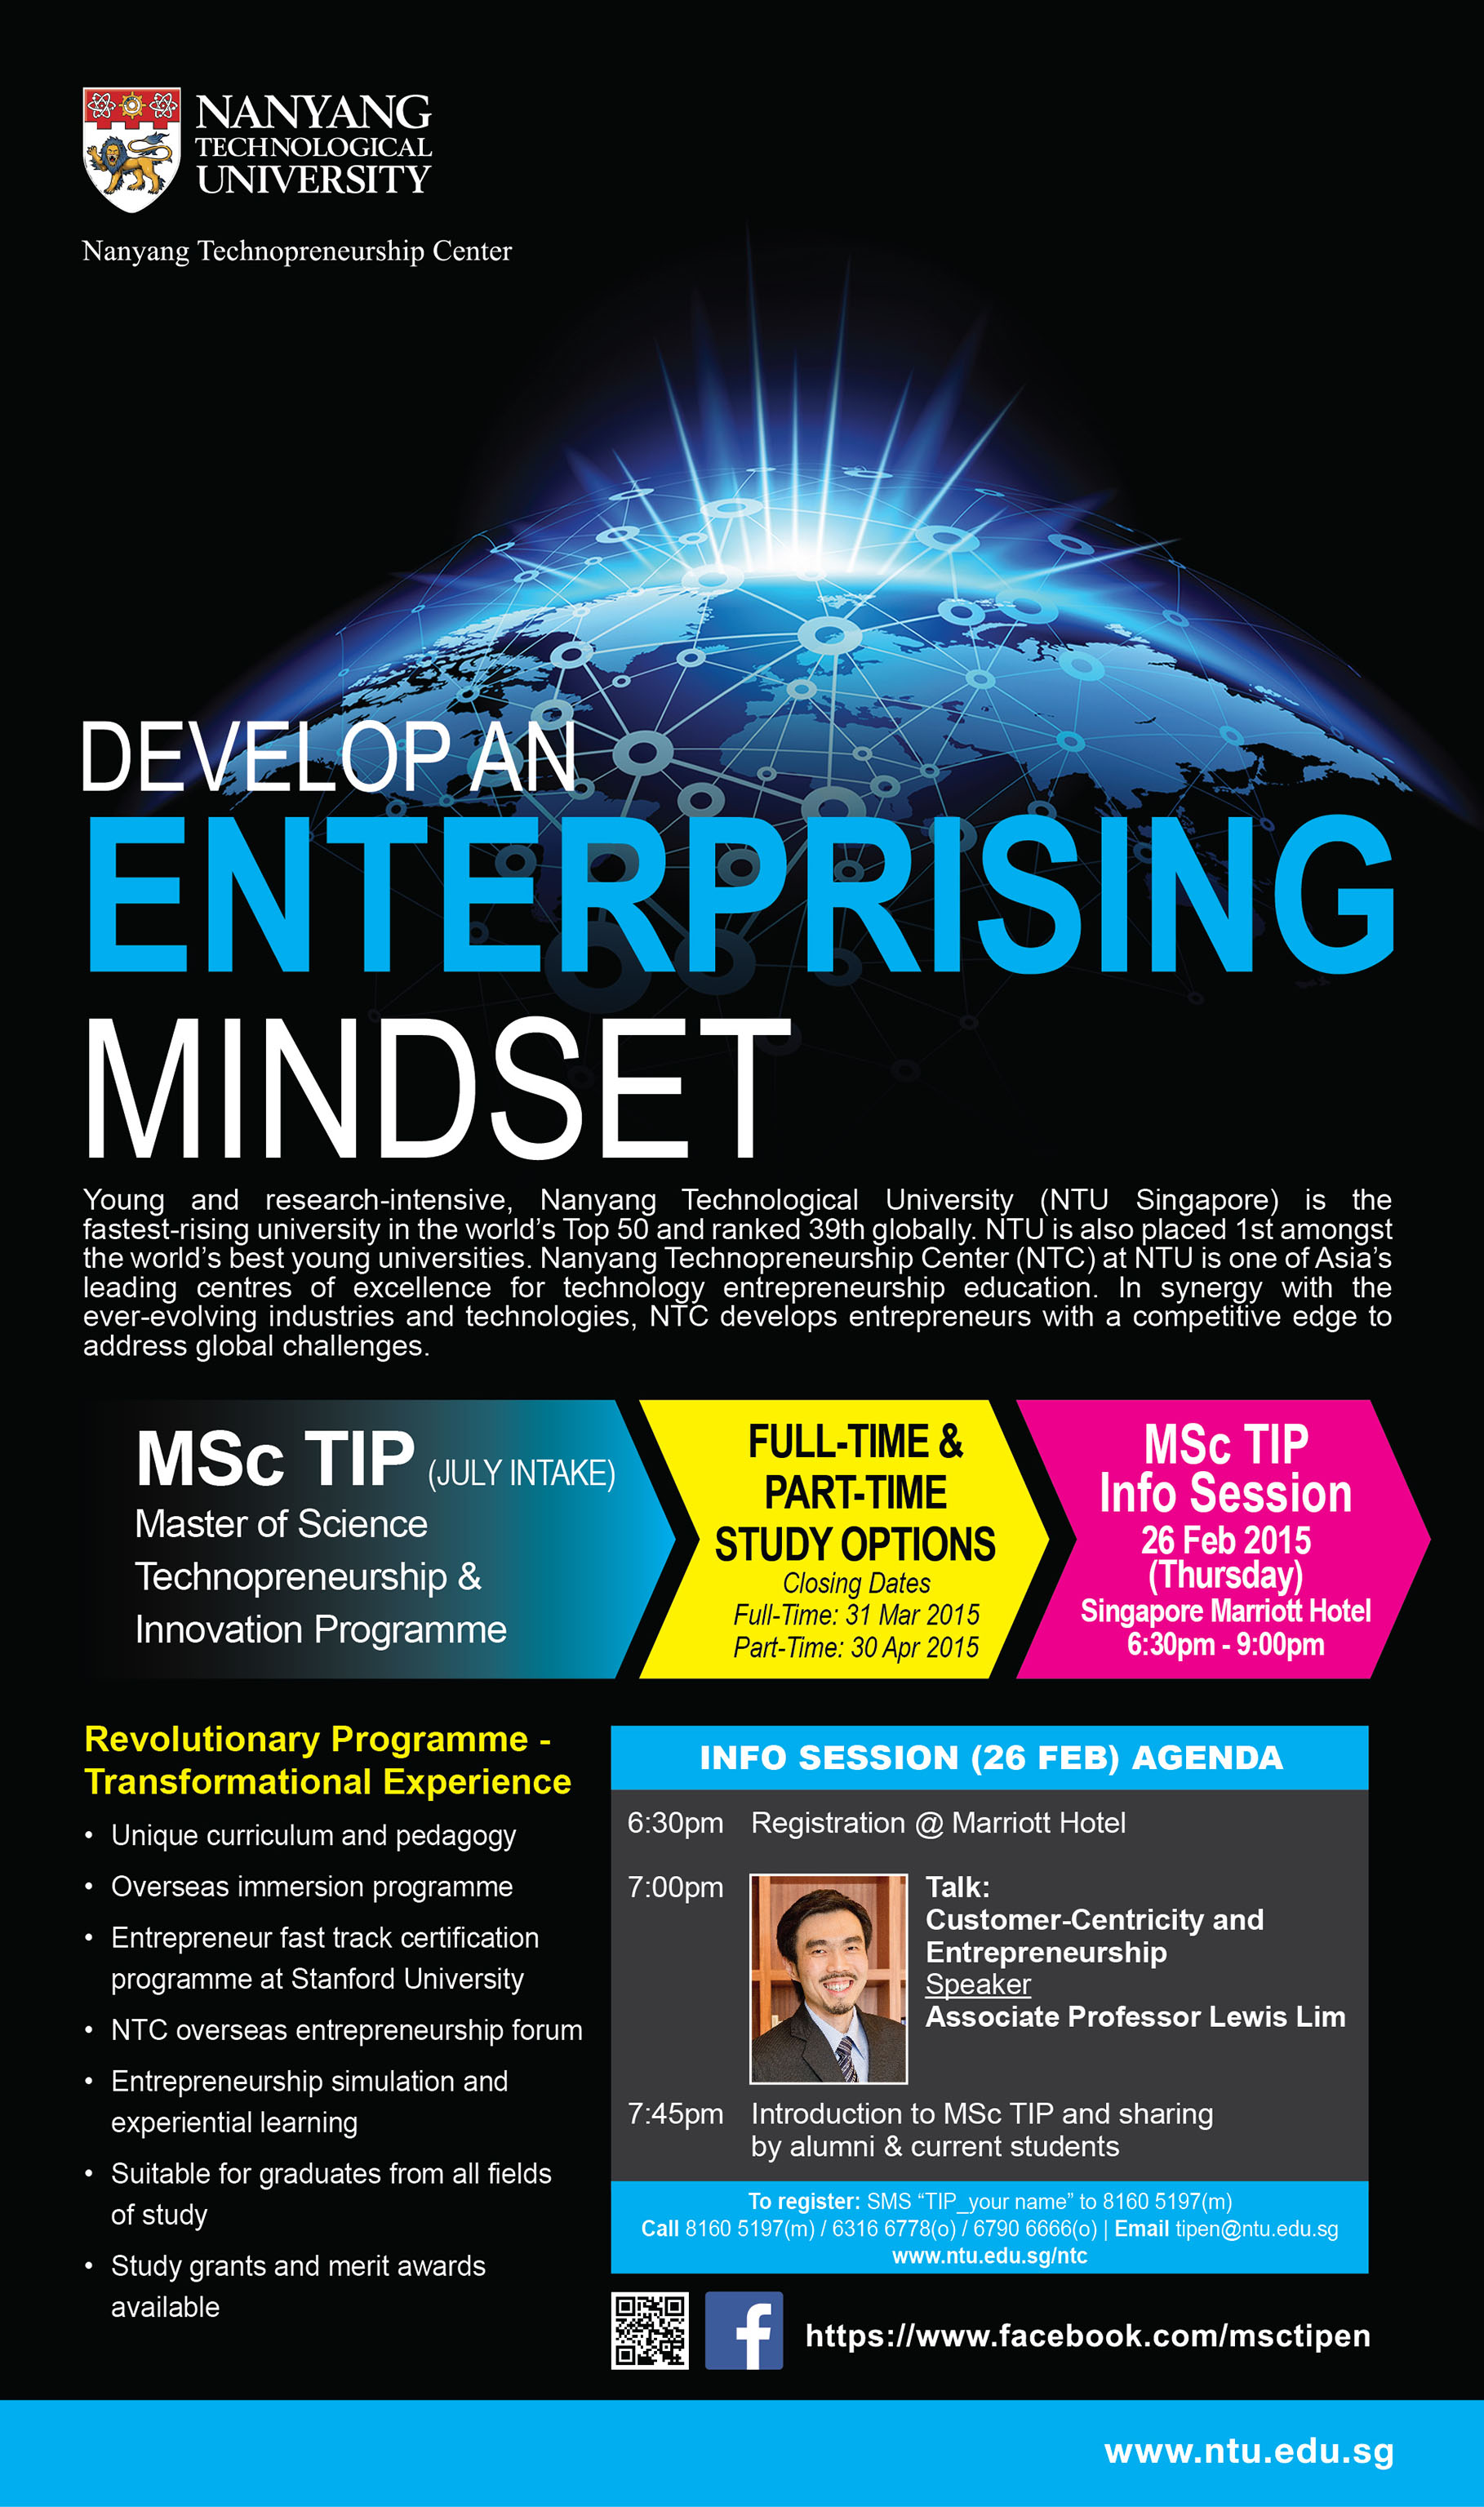 MSc TIP 26 Feb 2015 Info Session